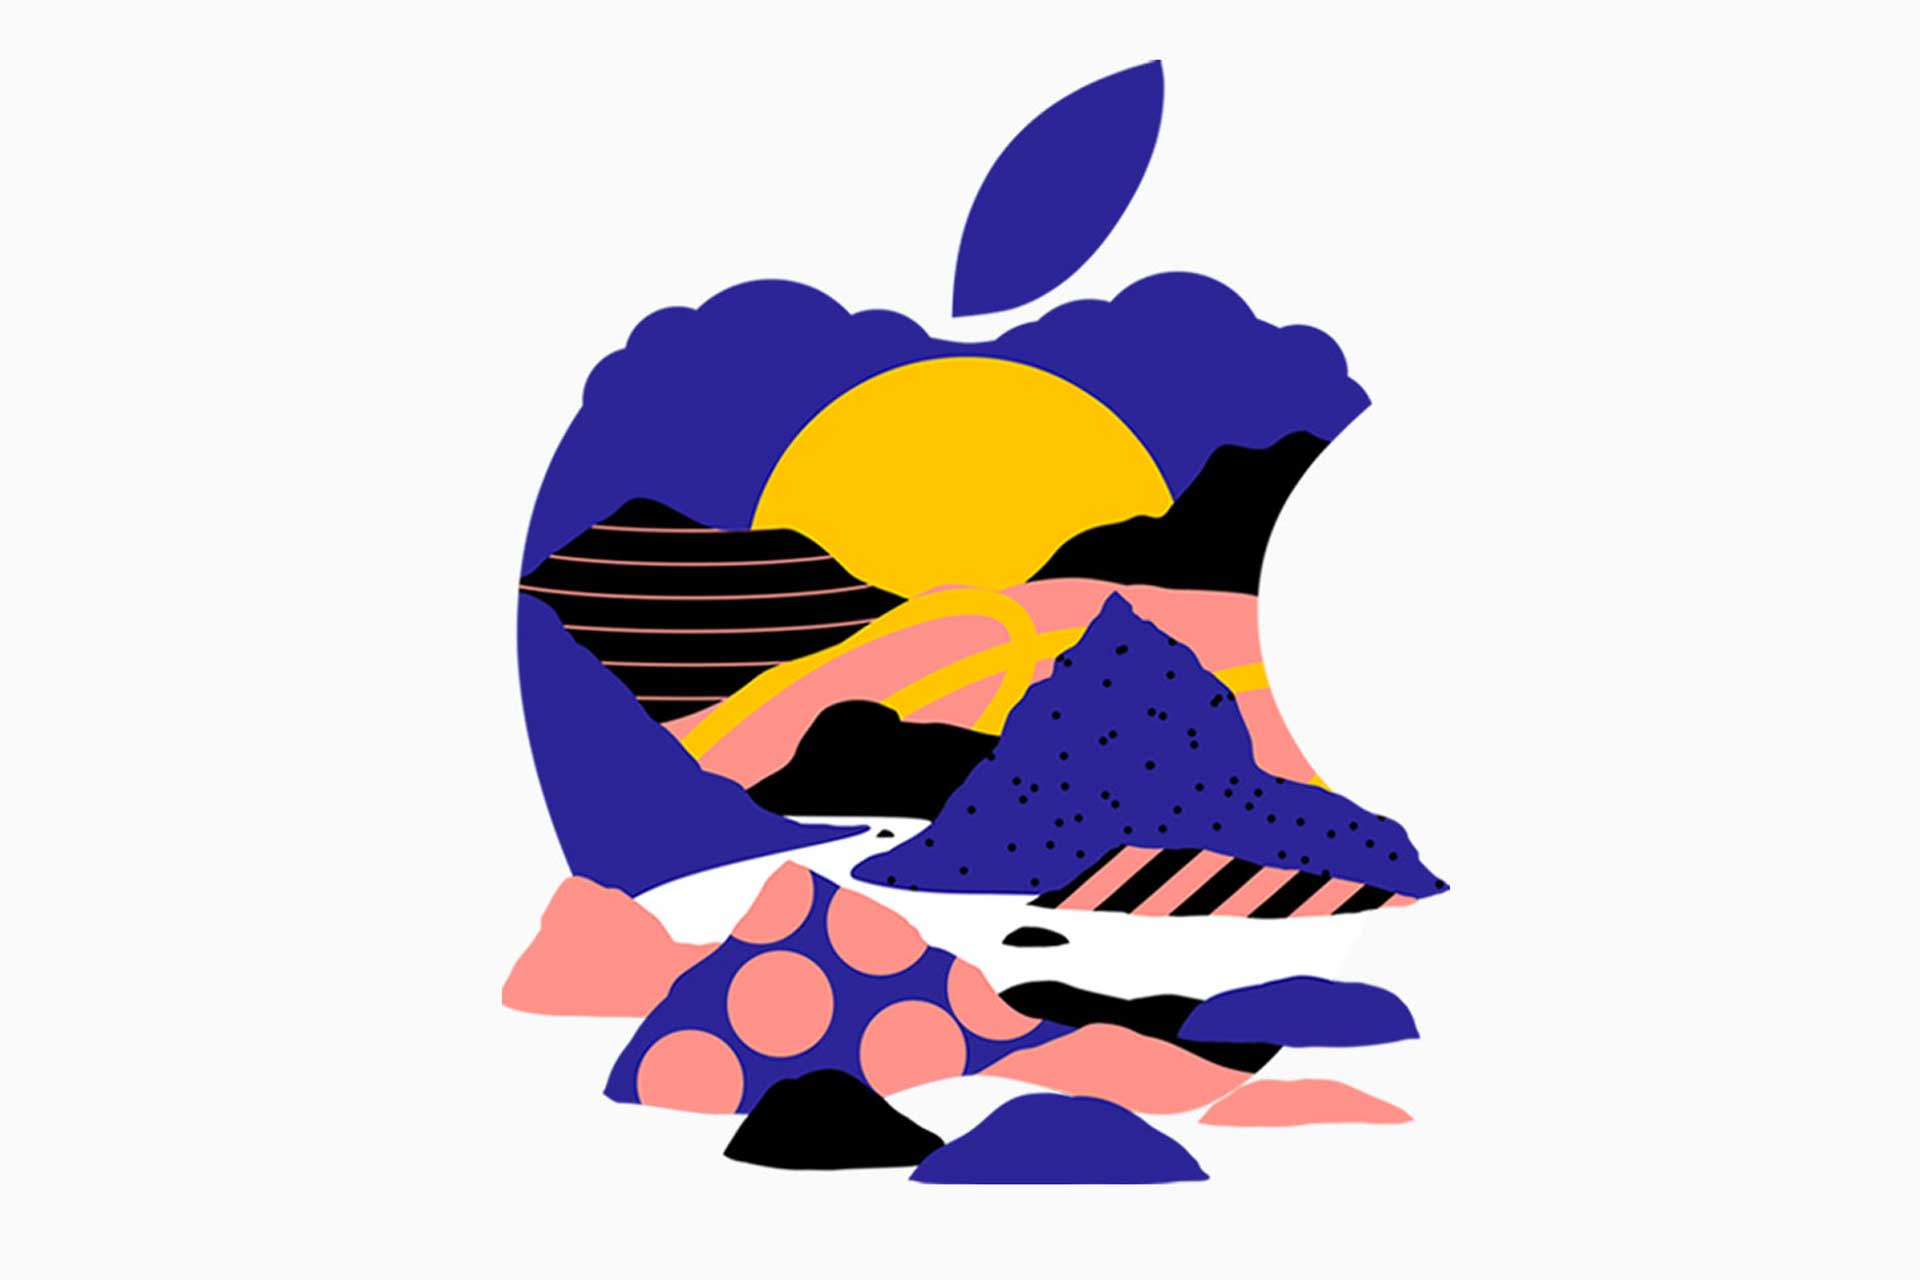 Apple S October Special Event Information And Times Mac Prices Australia